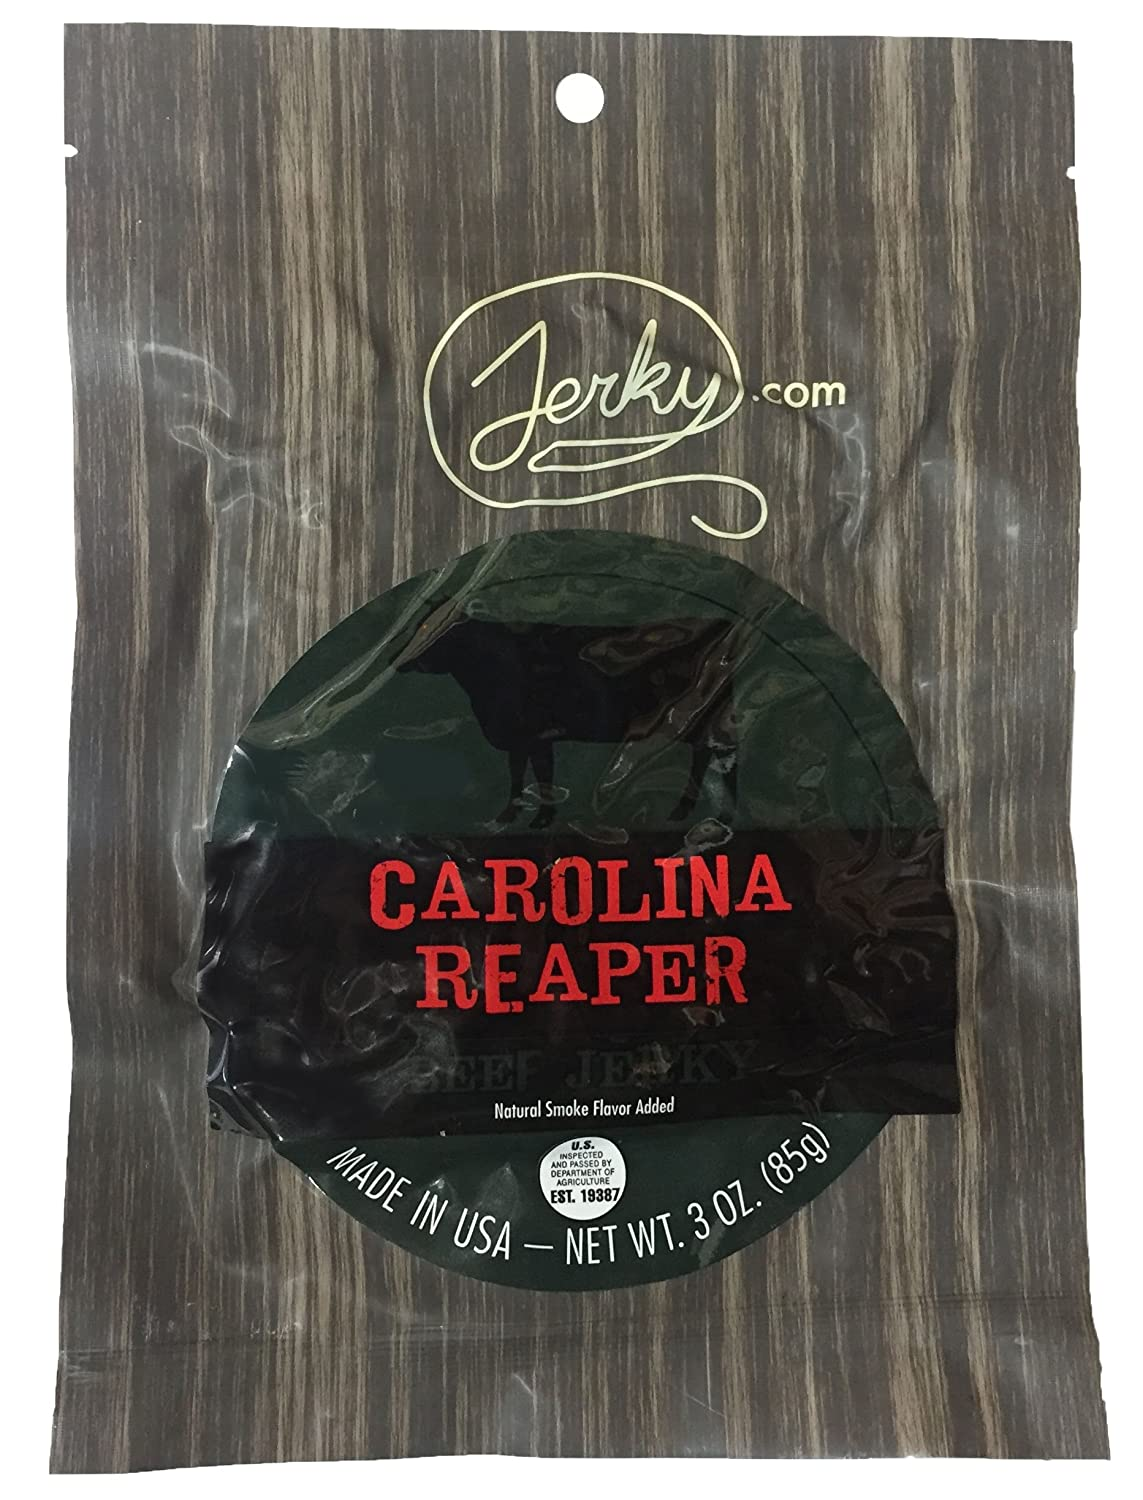 Jerky.com's Carolina Reaper Beef Jerky - Hottest Jerky in the World - All-Natural, No Added Preservatives, No Added Nitrites or Nitrates - 3 oz.